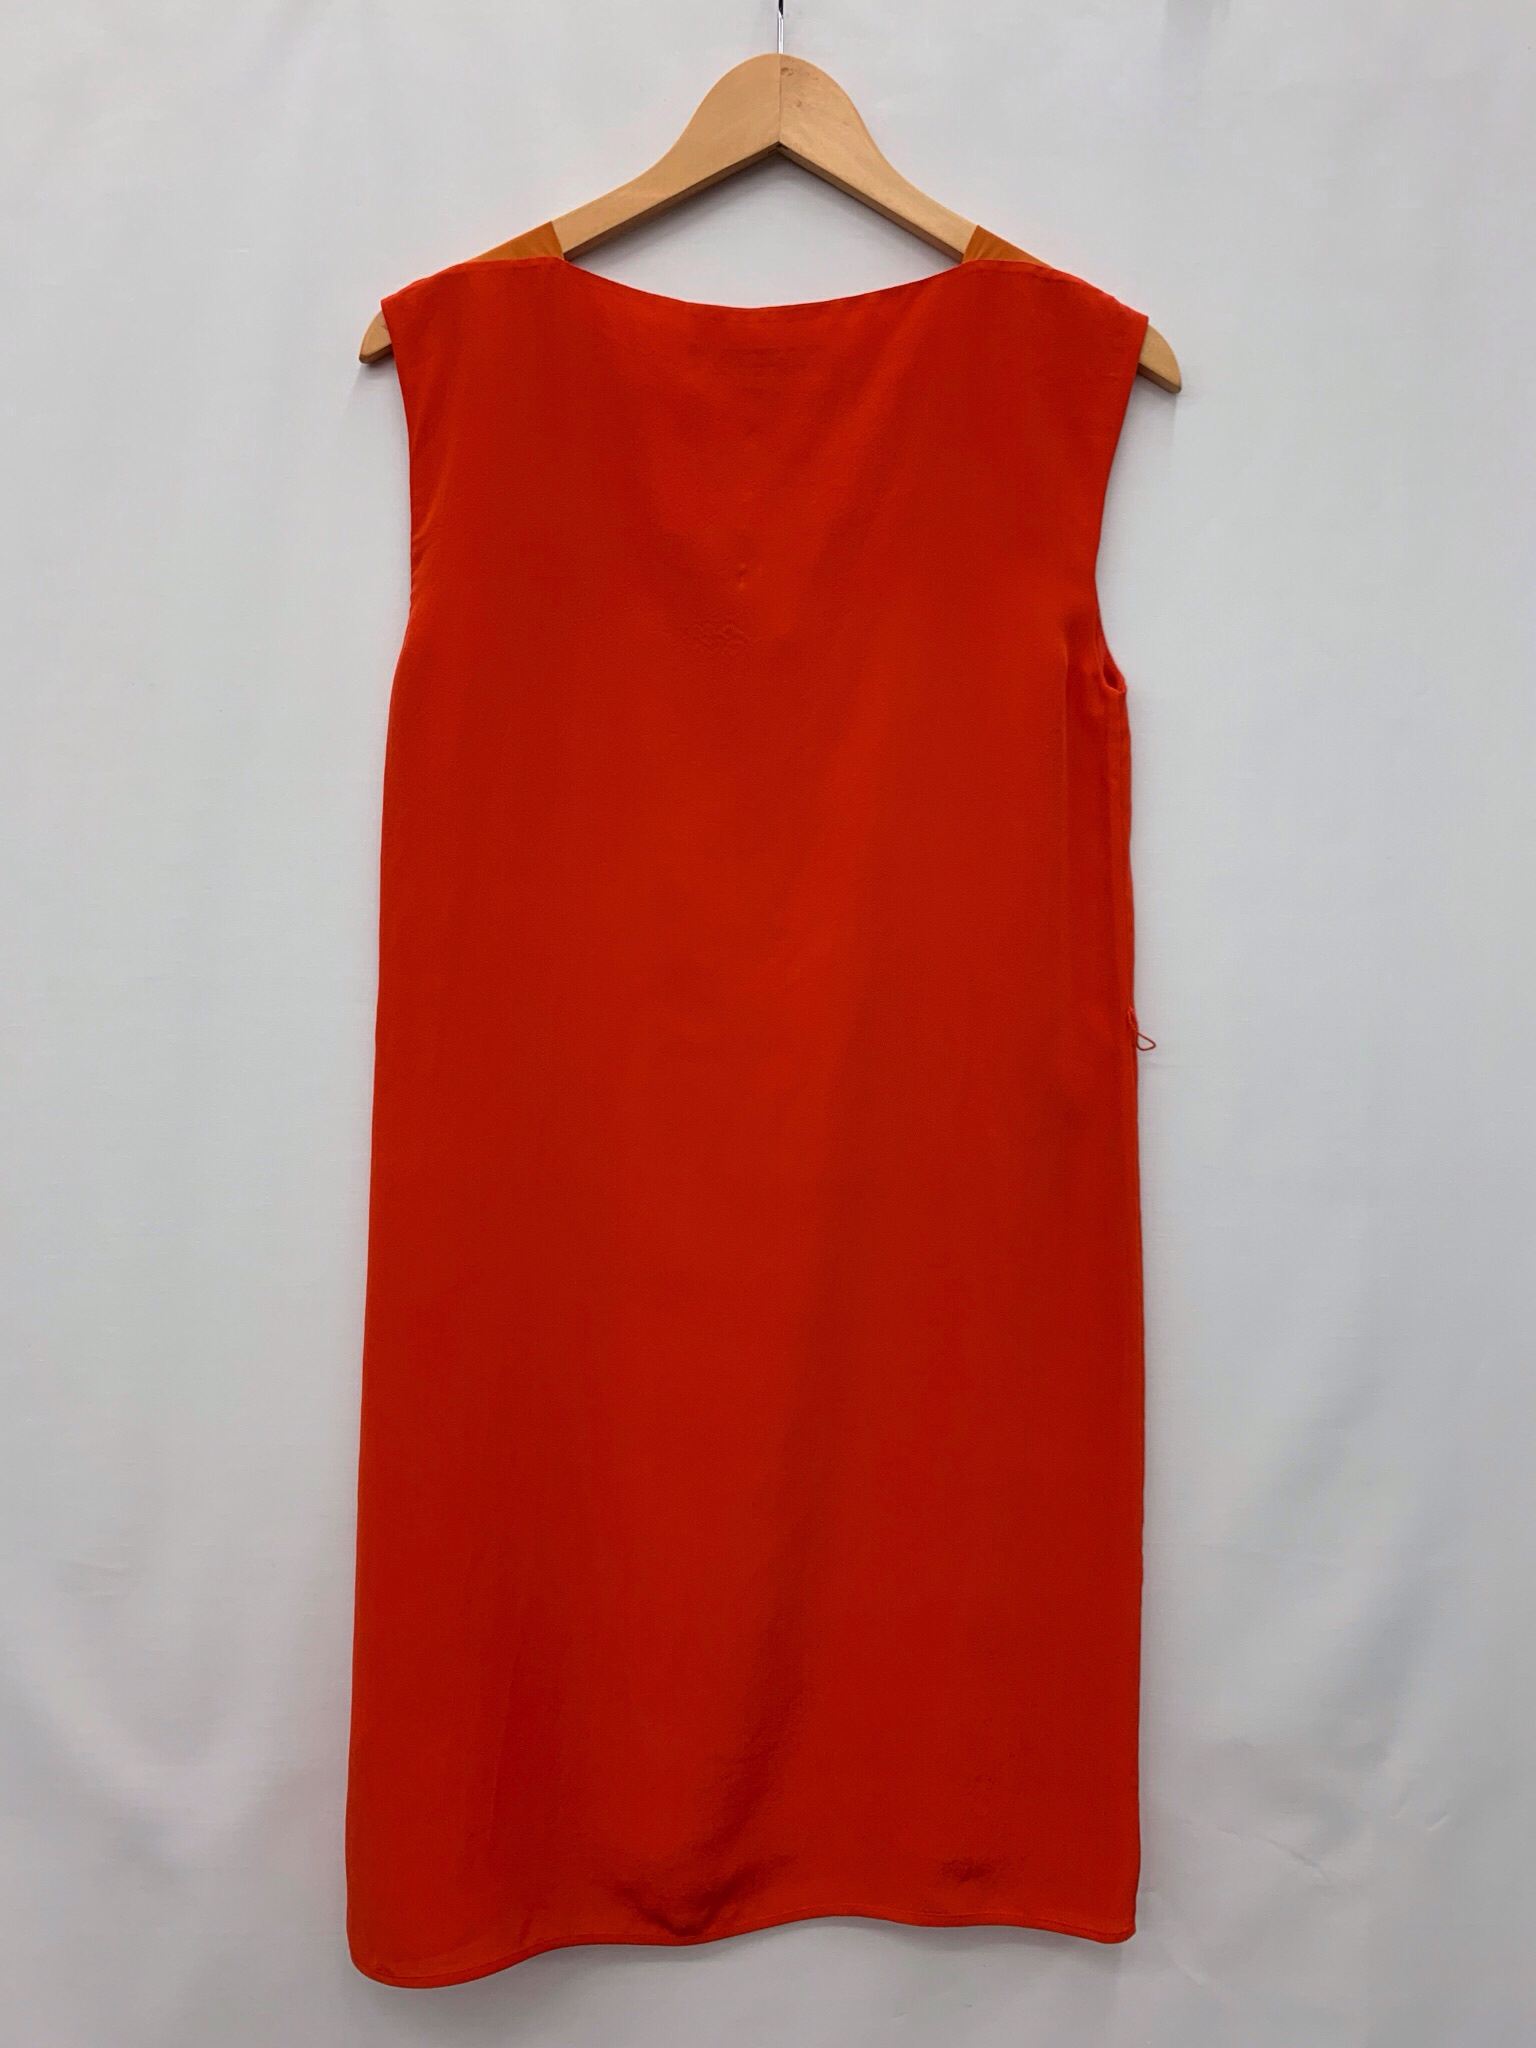 Size-4-FRENCH-CONNECTION-Silk-Dress_1037105B.jpg